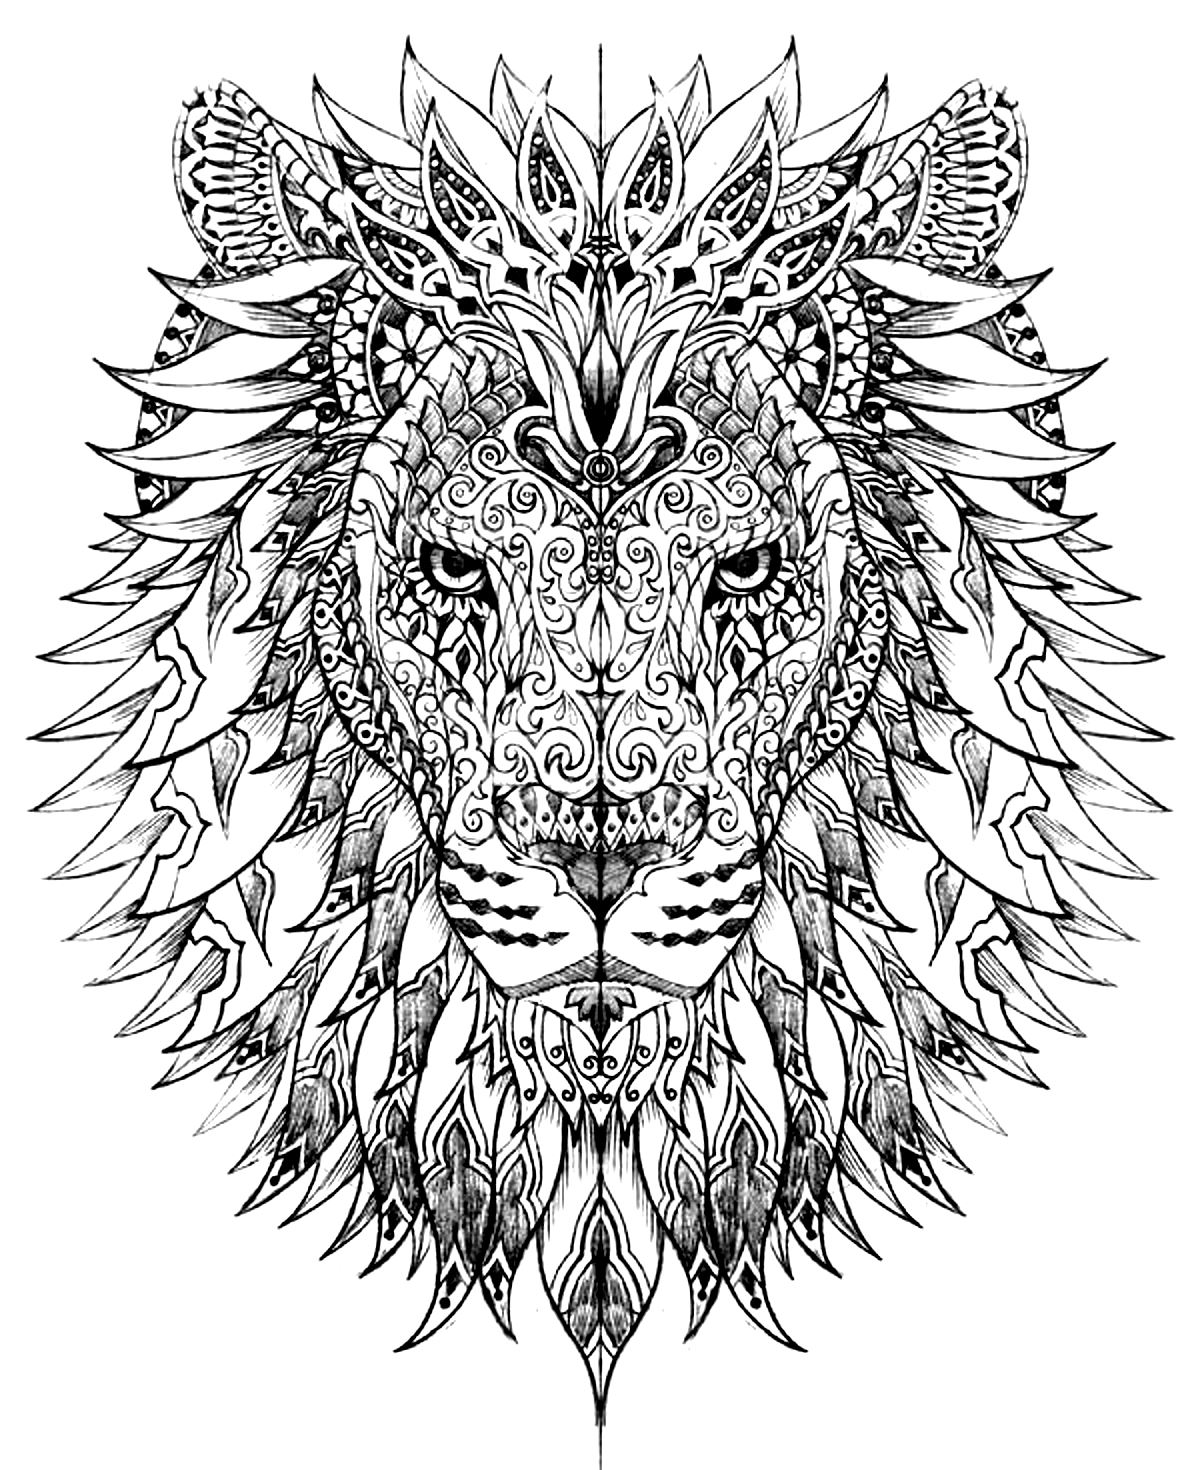 coloring pages of lion free easy to print lion coloring pages tulamama pages coloring lion of